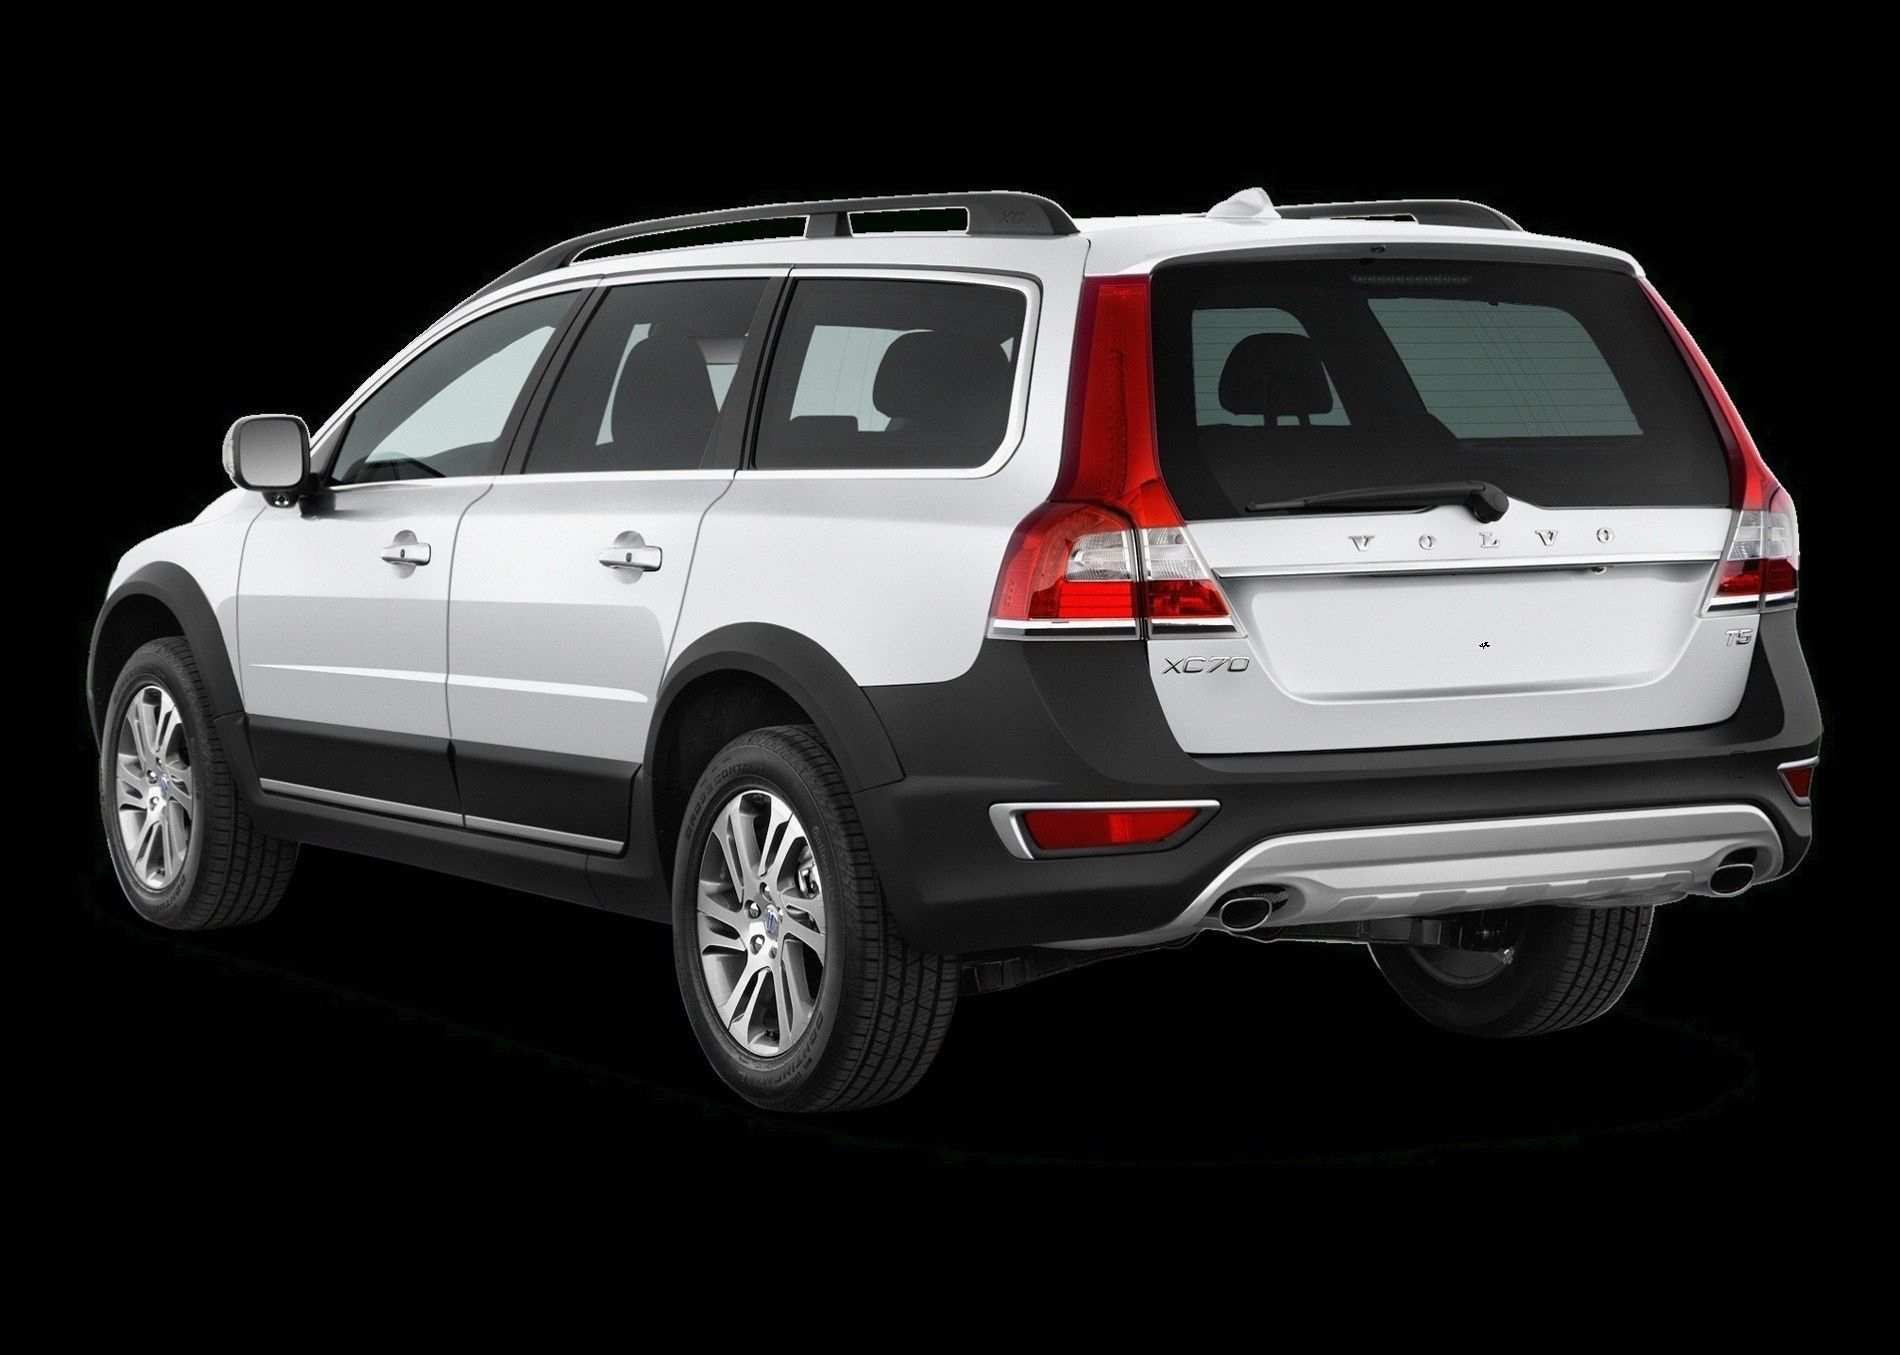 86 A 2020 All Volvo Xc70 Style